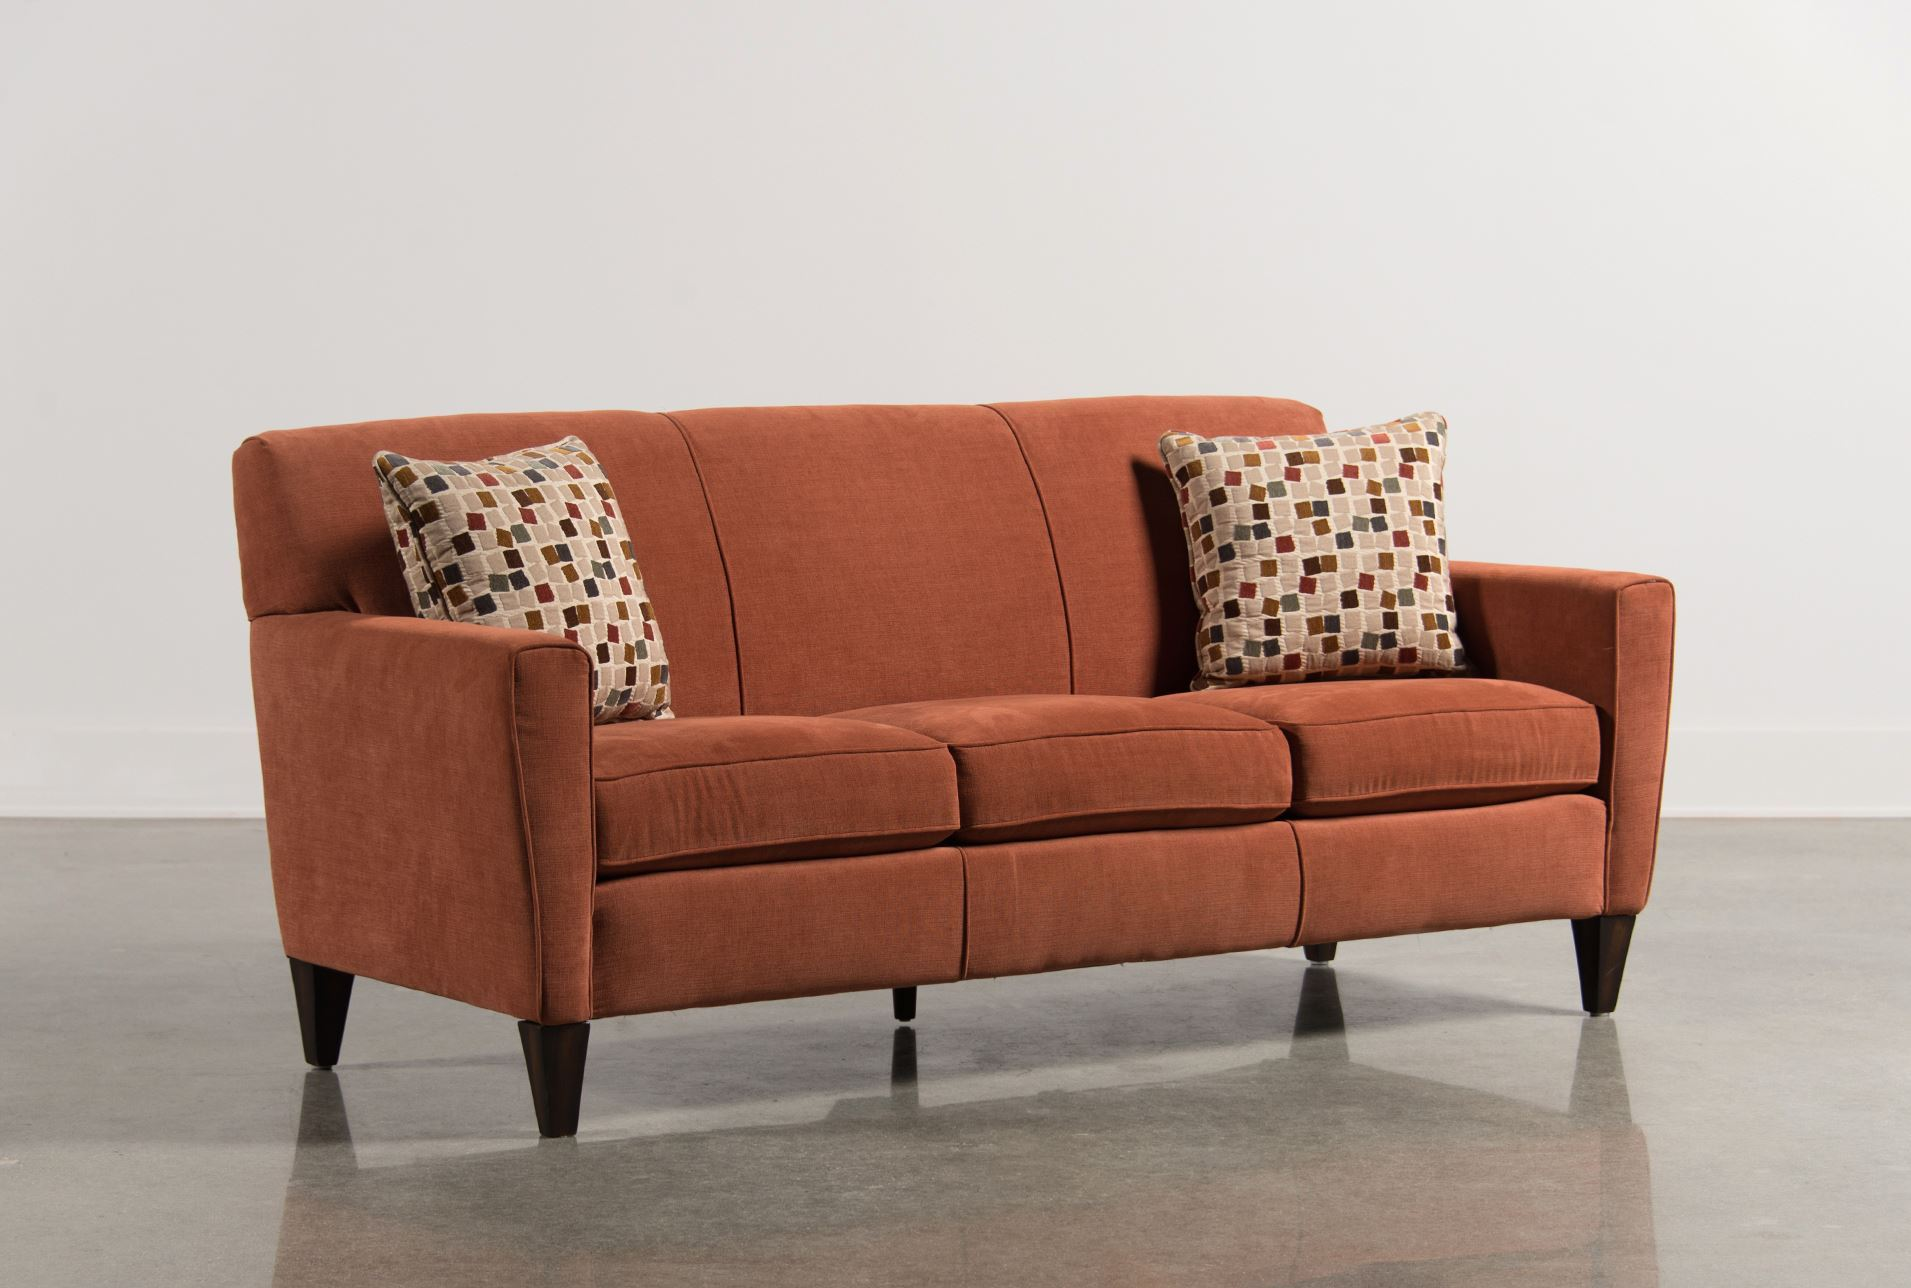 Orange living room furniture living spaces Living spaces furniture